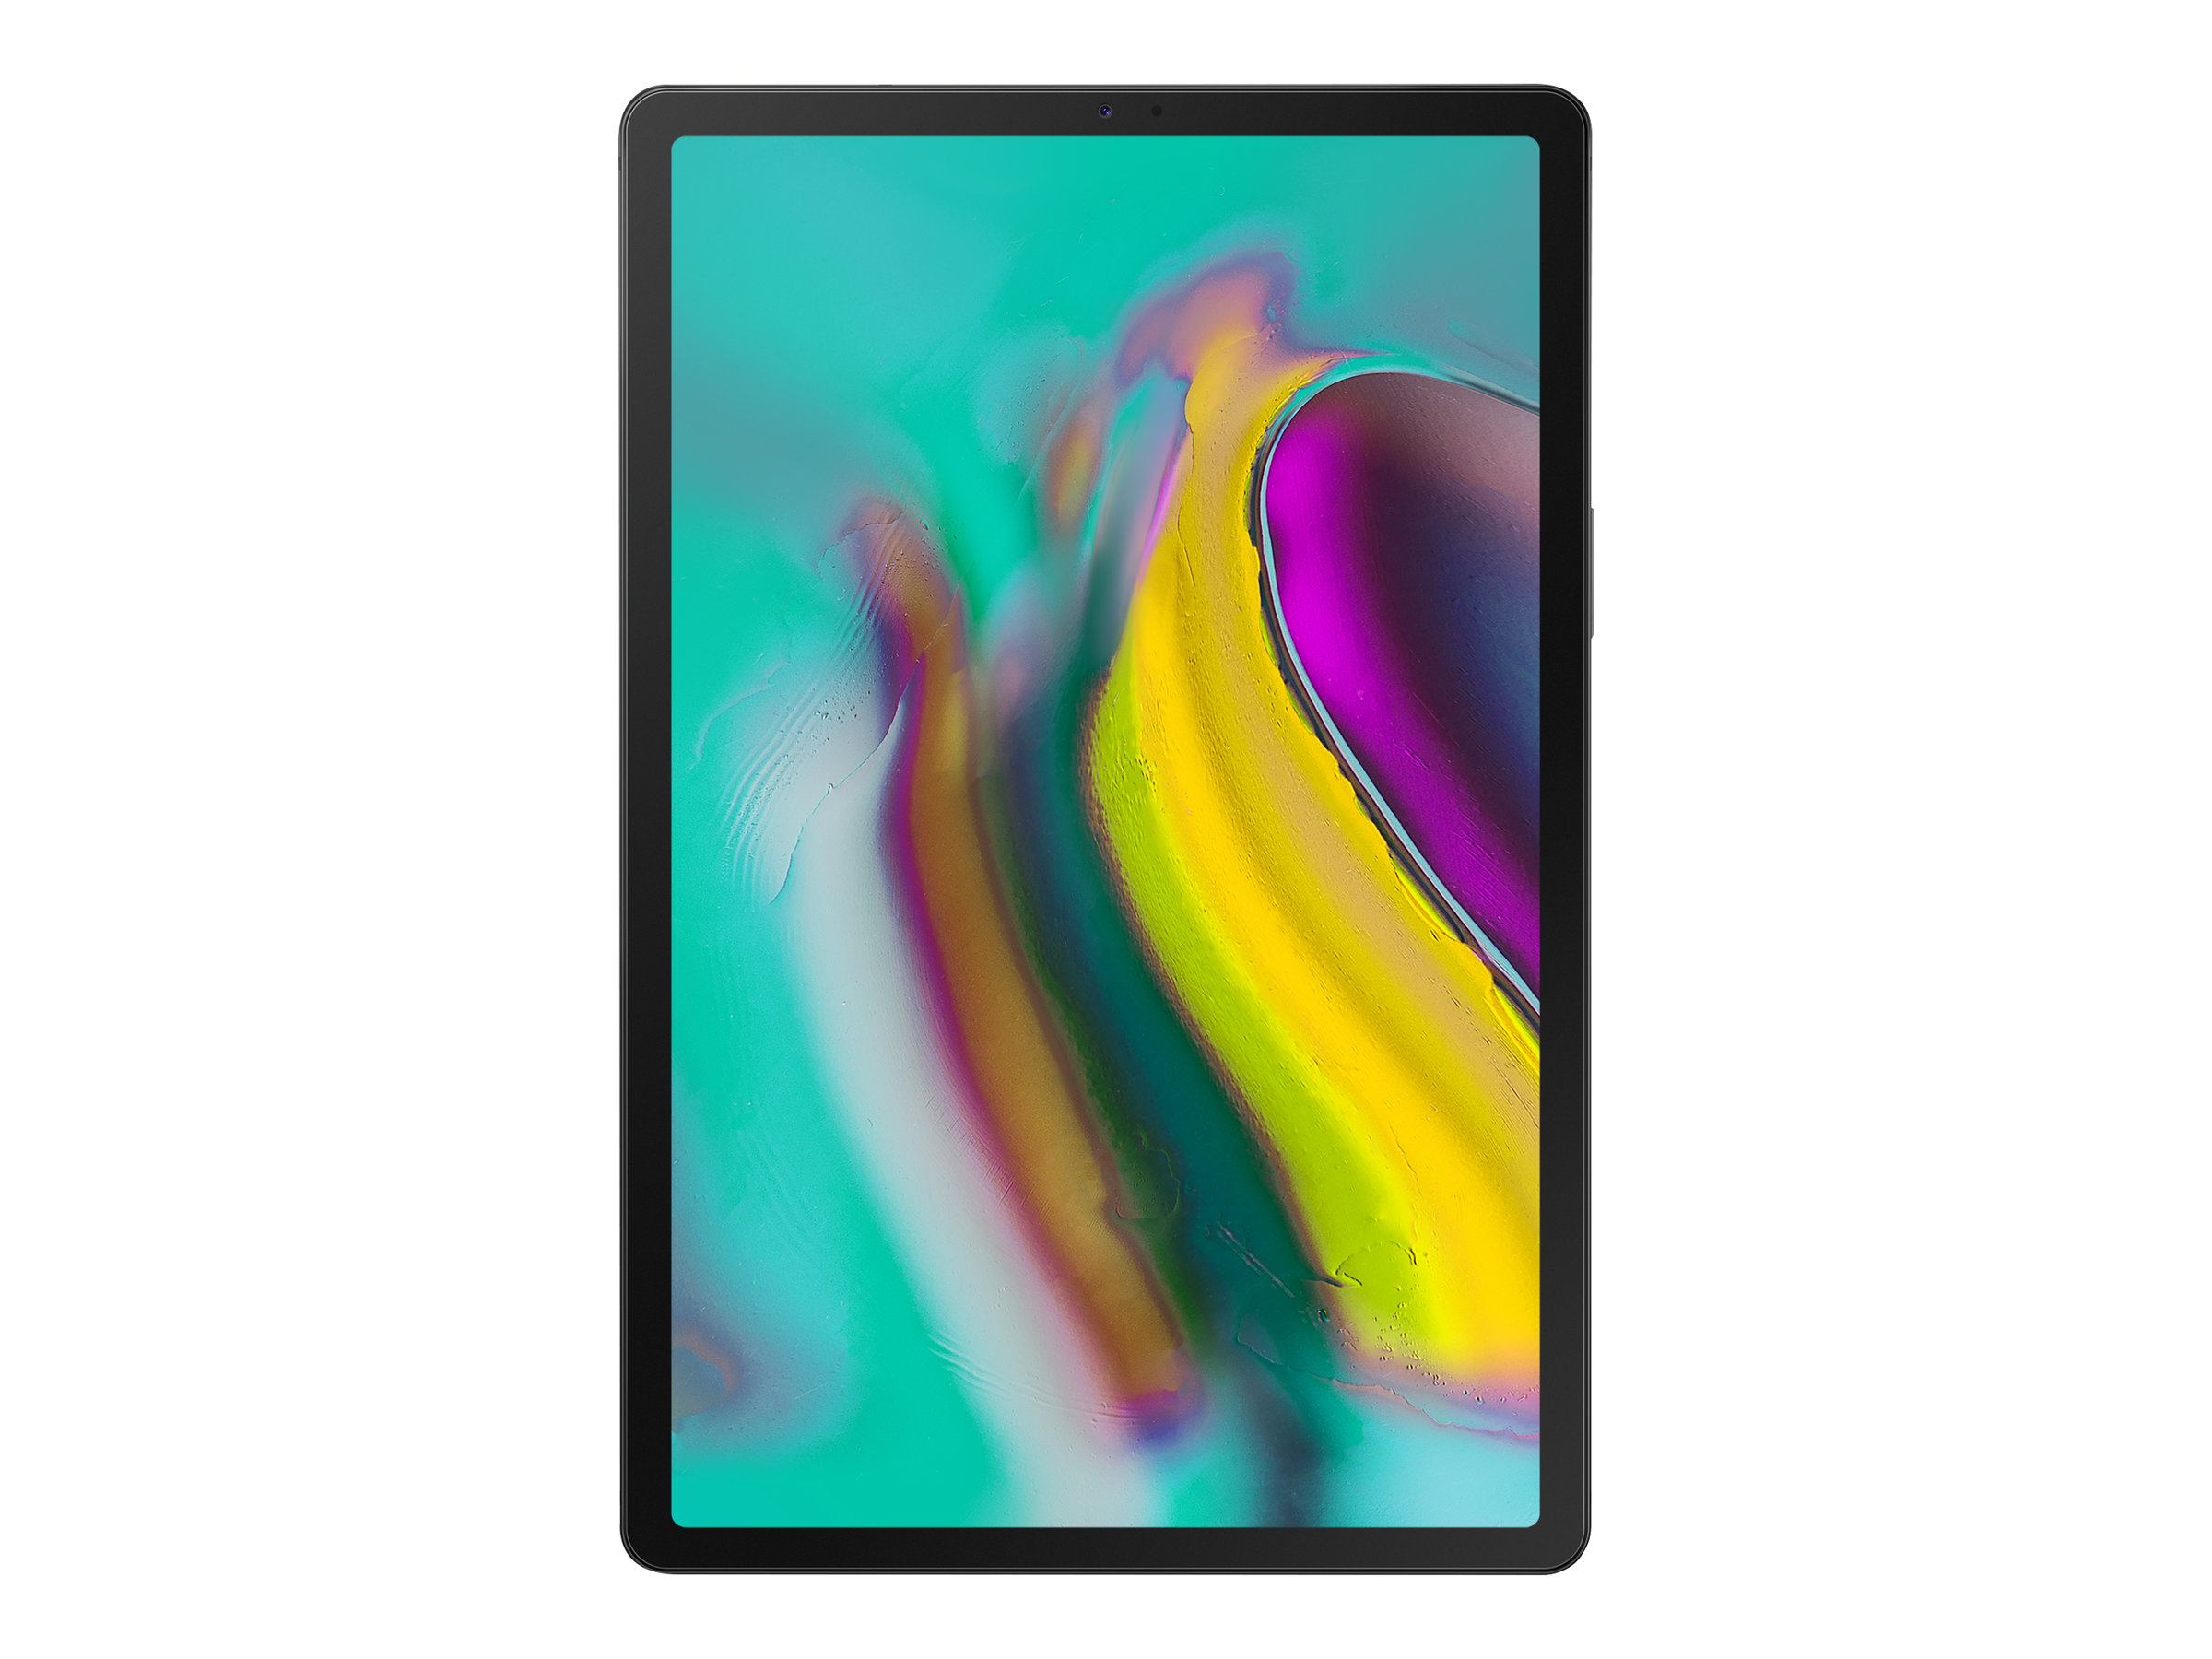 Samsung Galaxy Tab S5e - Tablet - Android 9.0 (Pie)